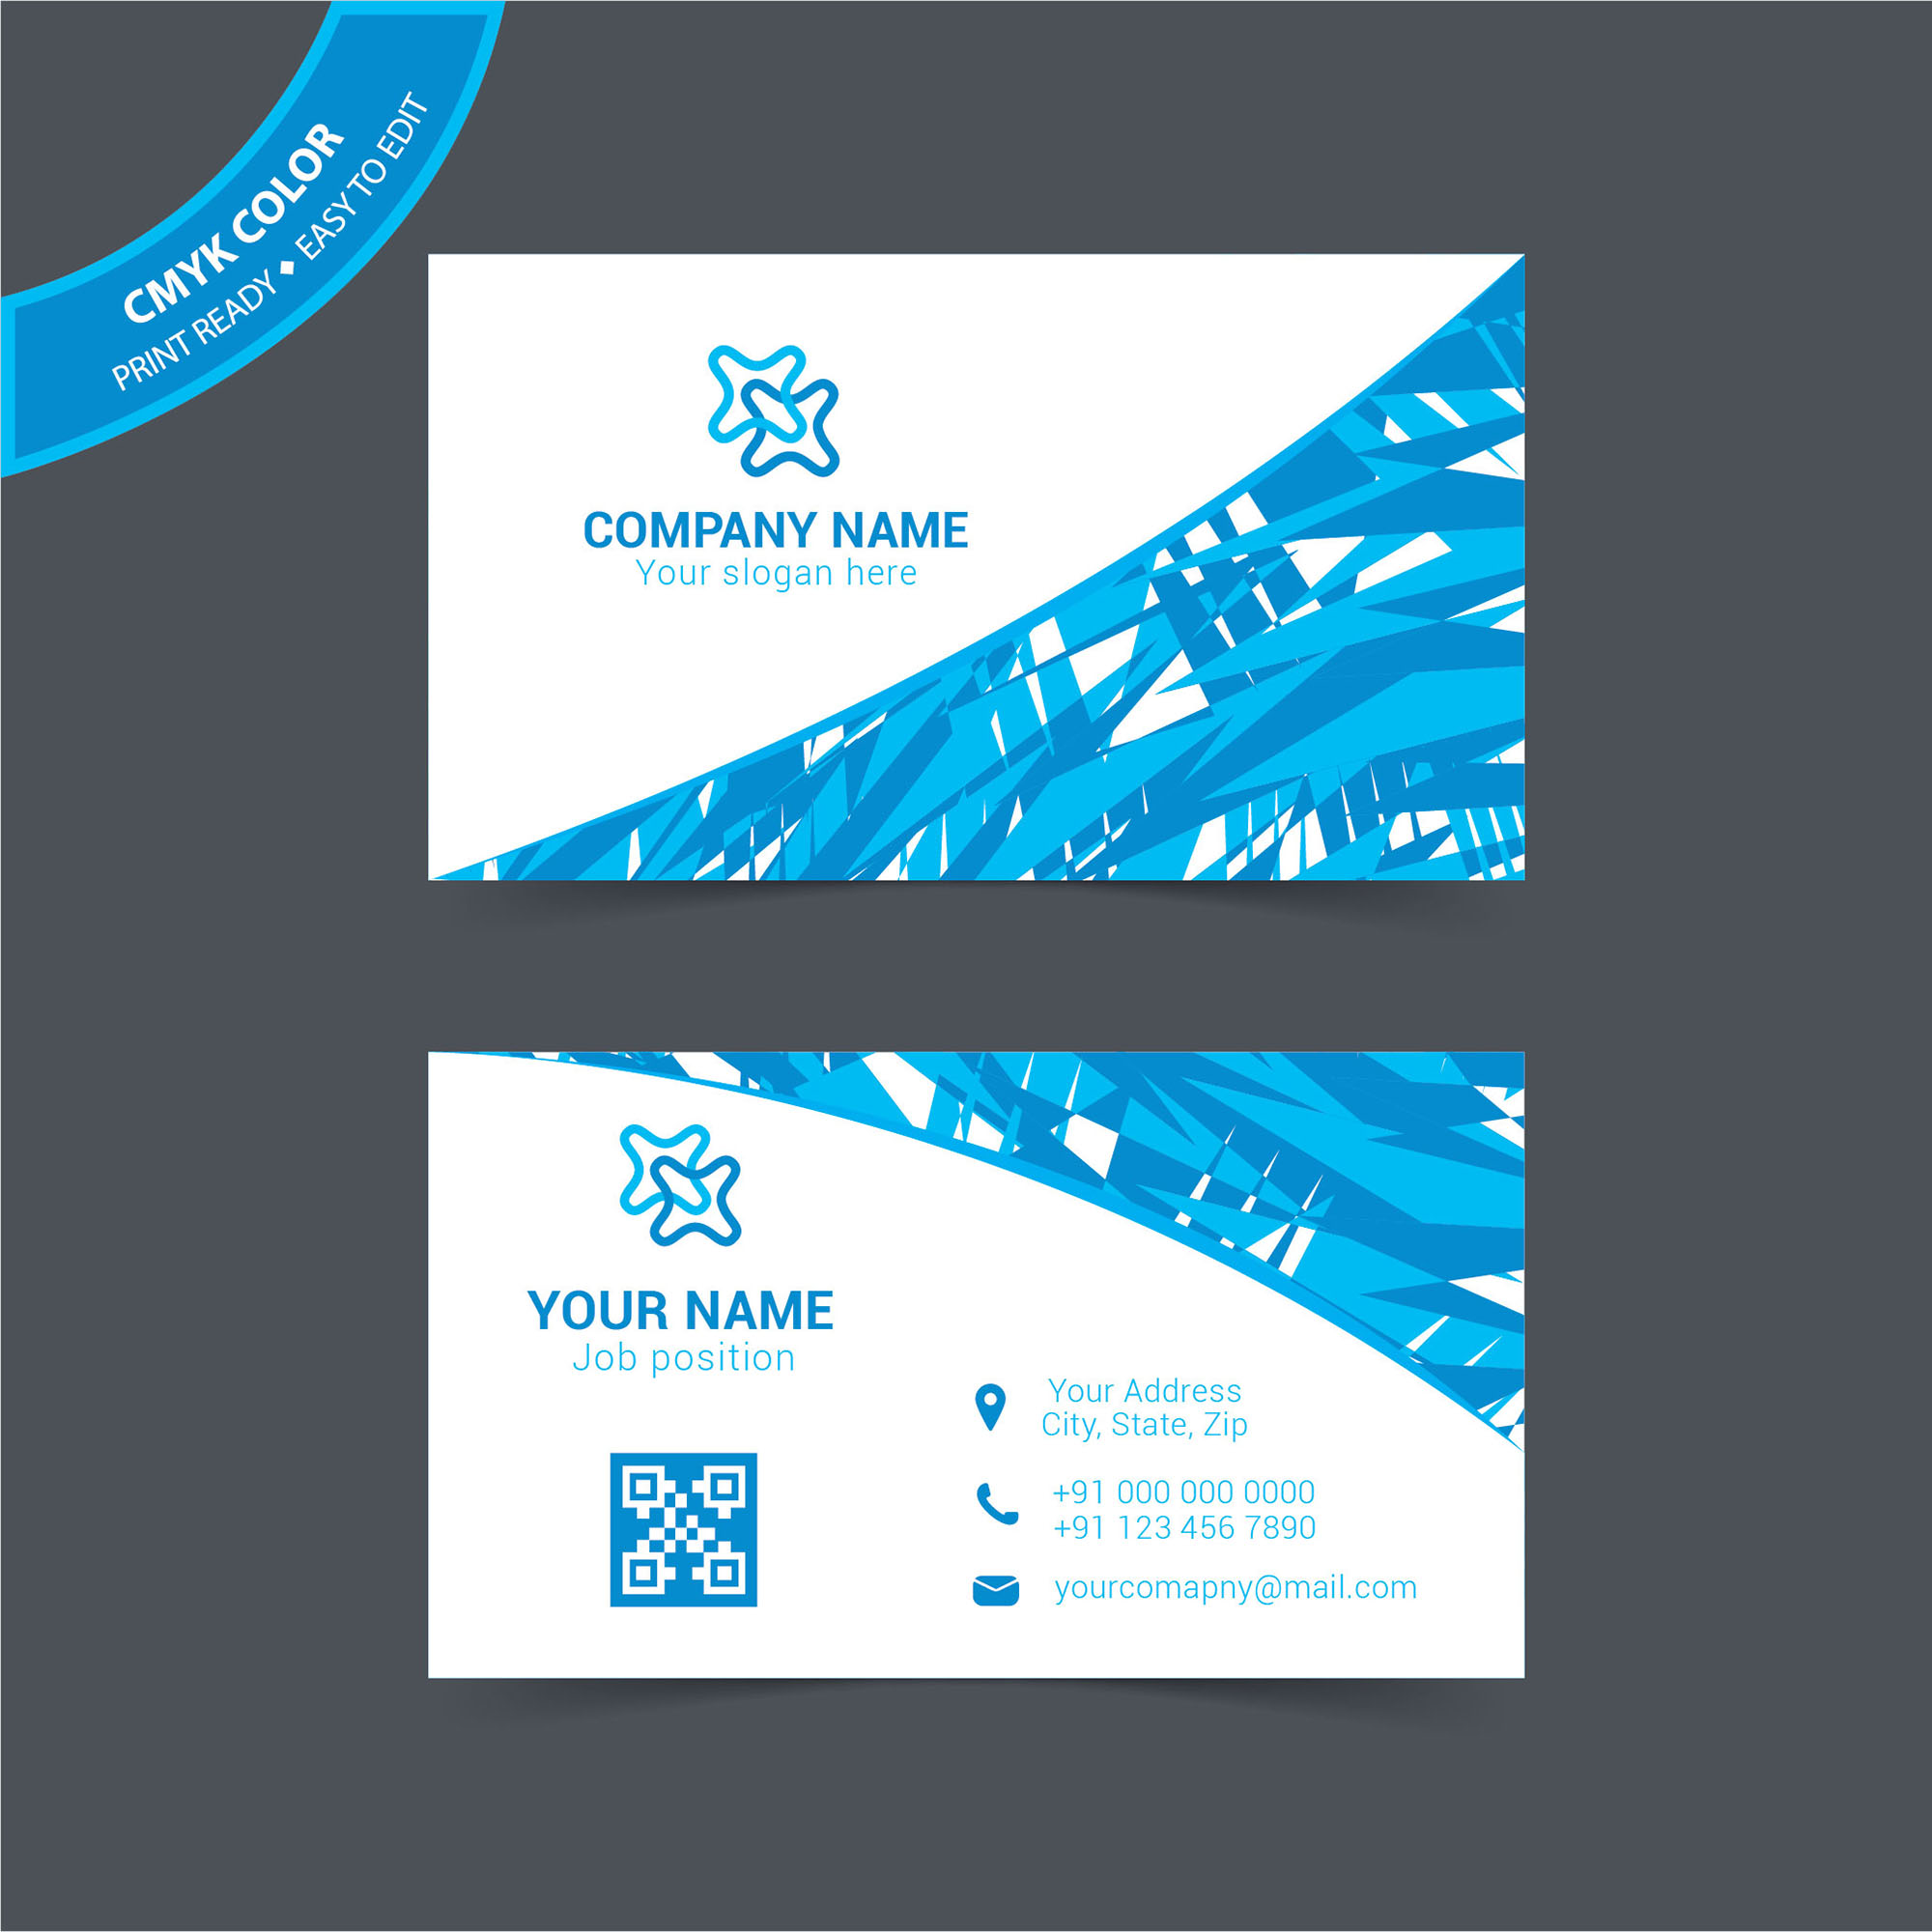 Blue Abstract Business Card Free Download - Wisxi.com